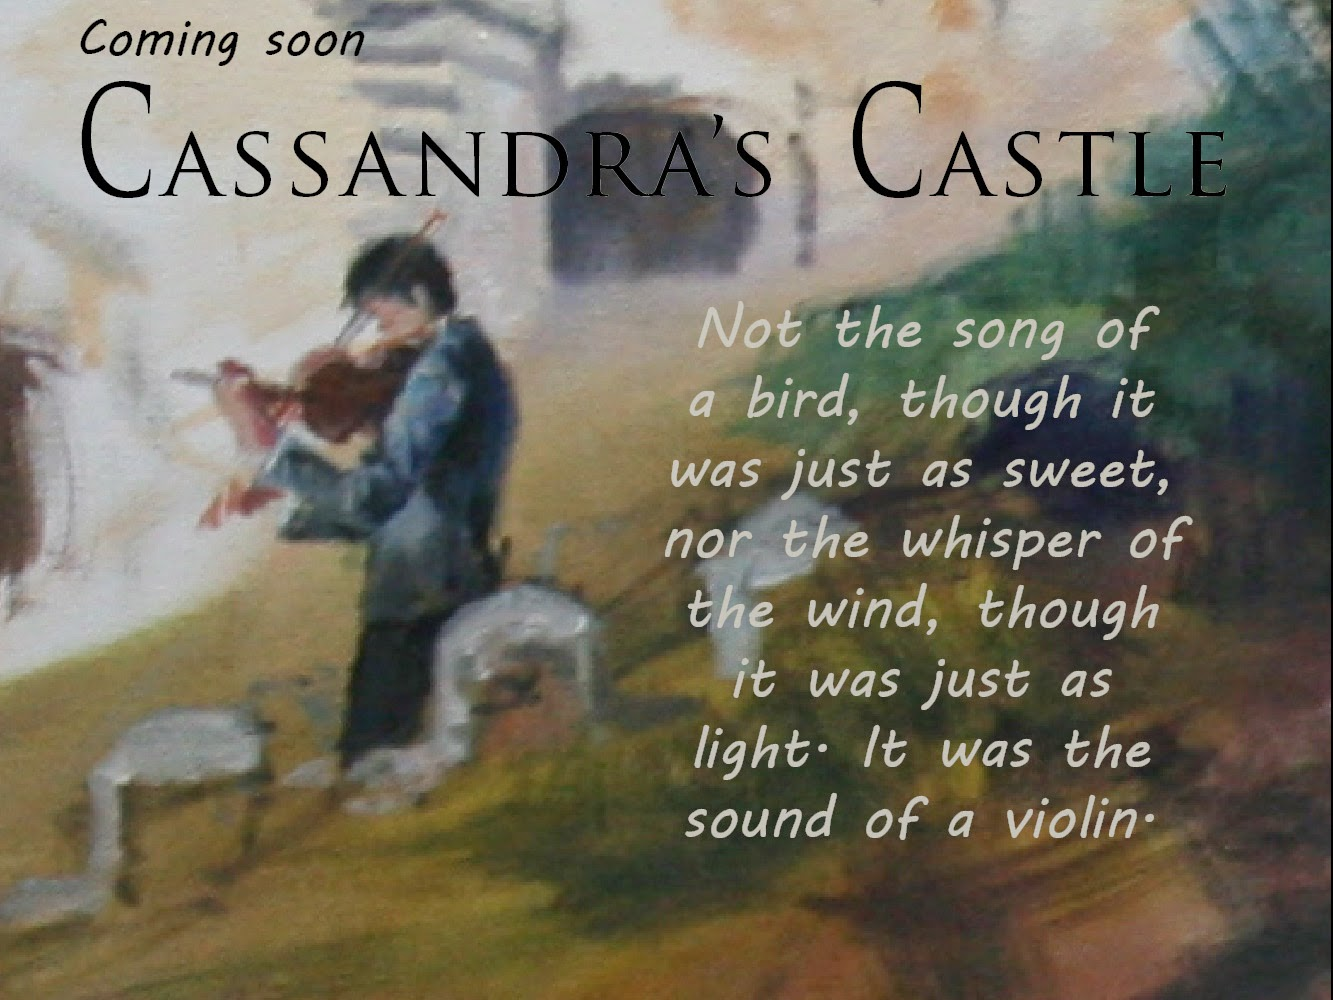 Book To Film: Cassandra's Castle, www.writersandauthors.info